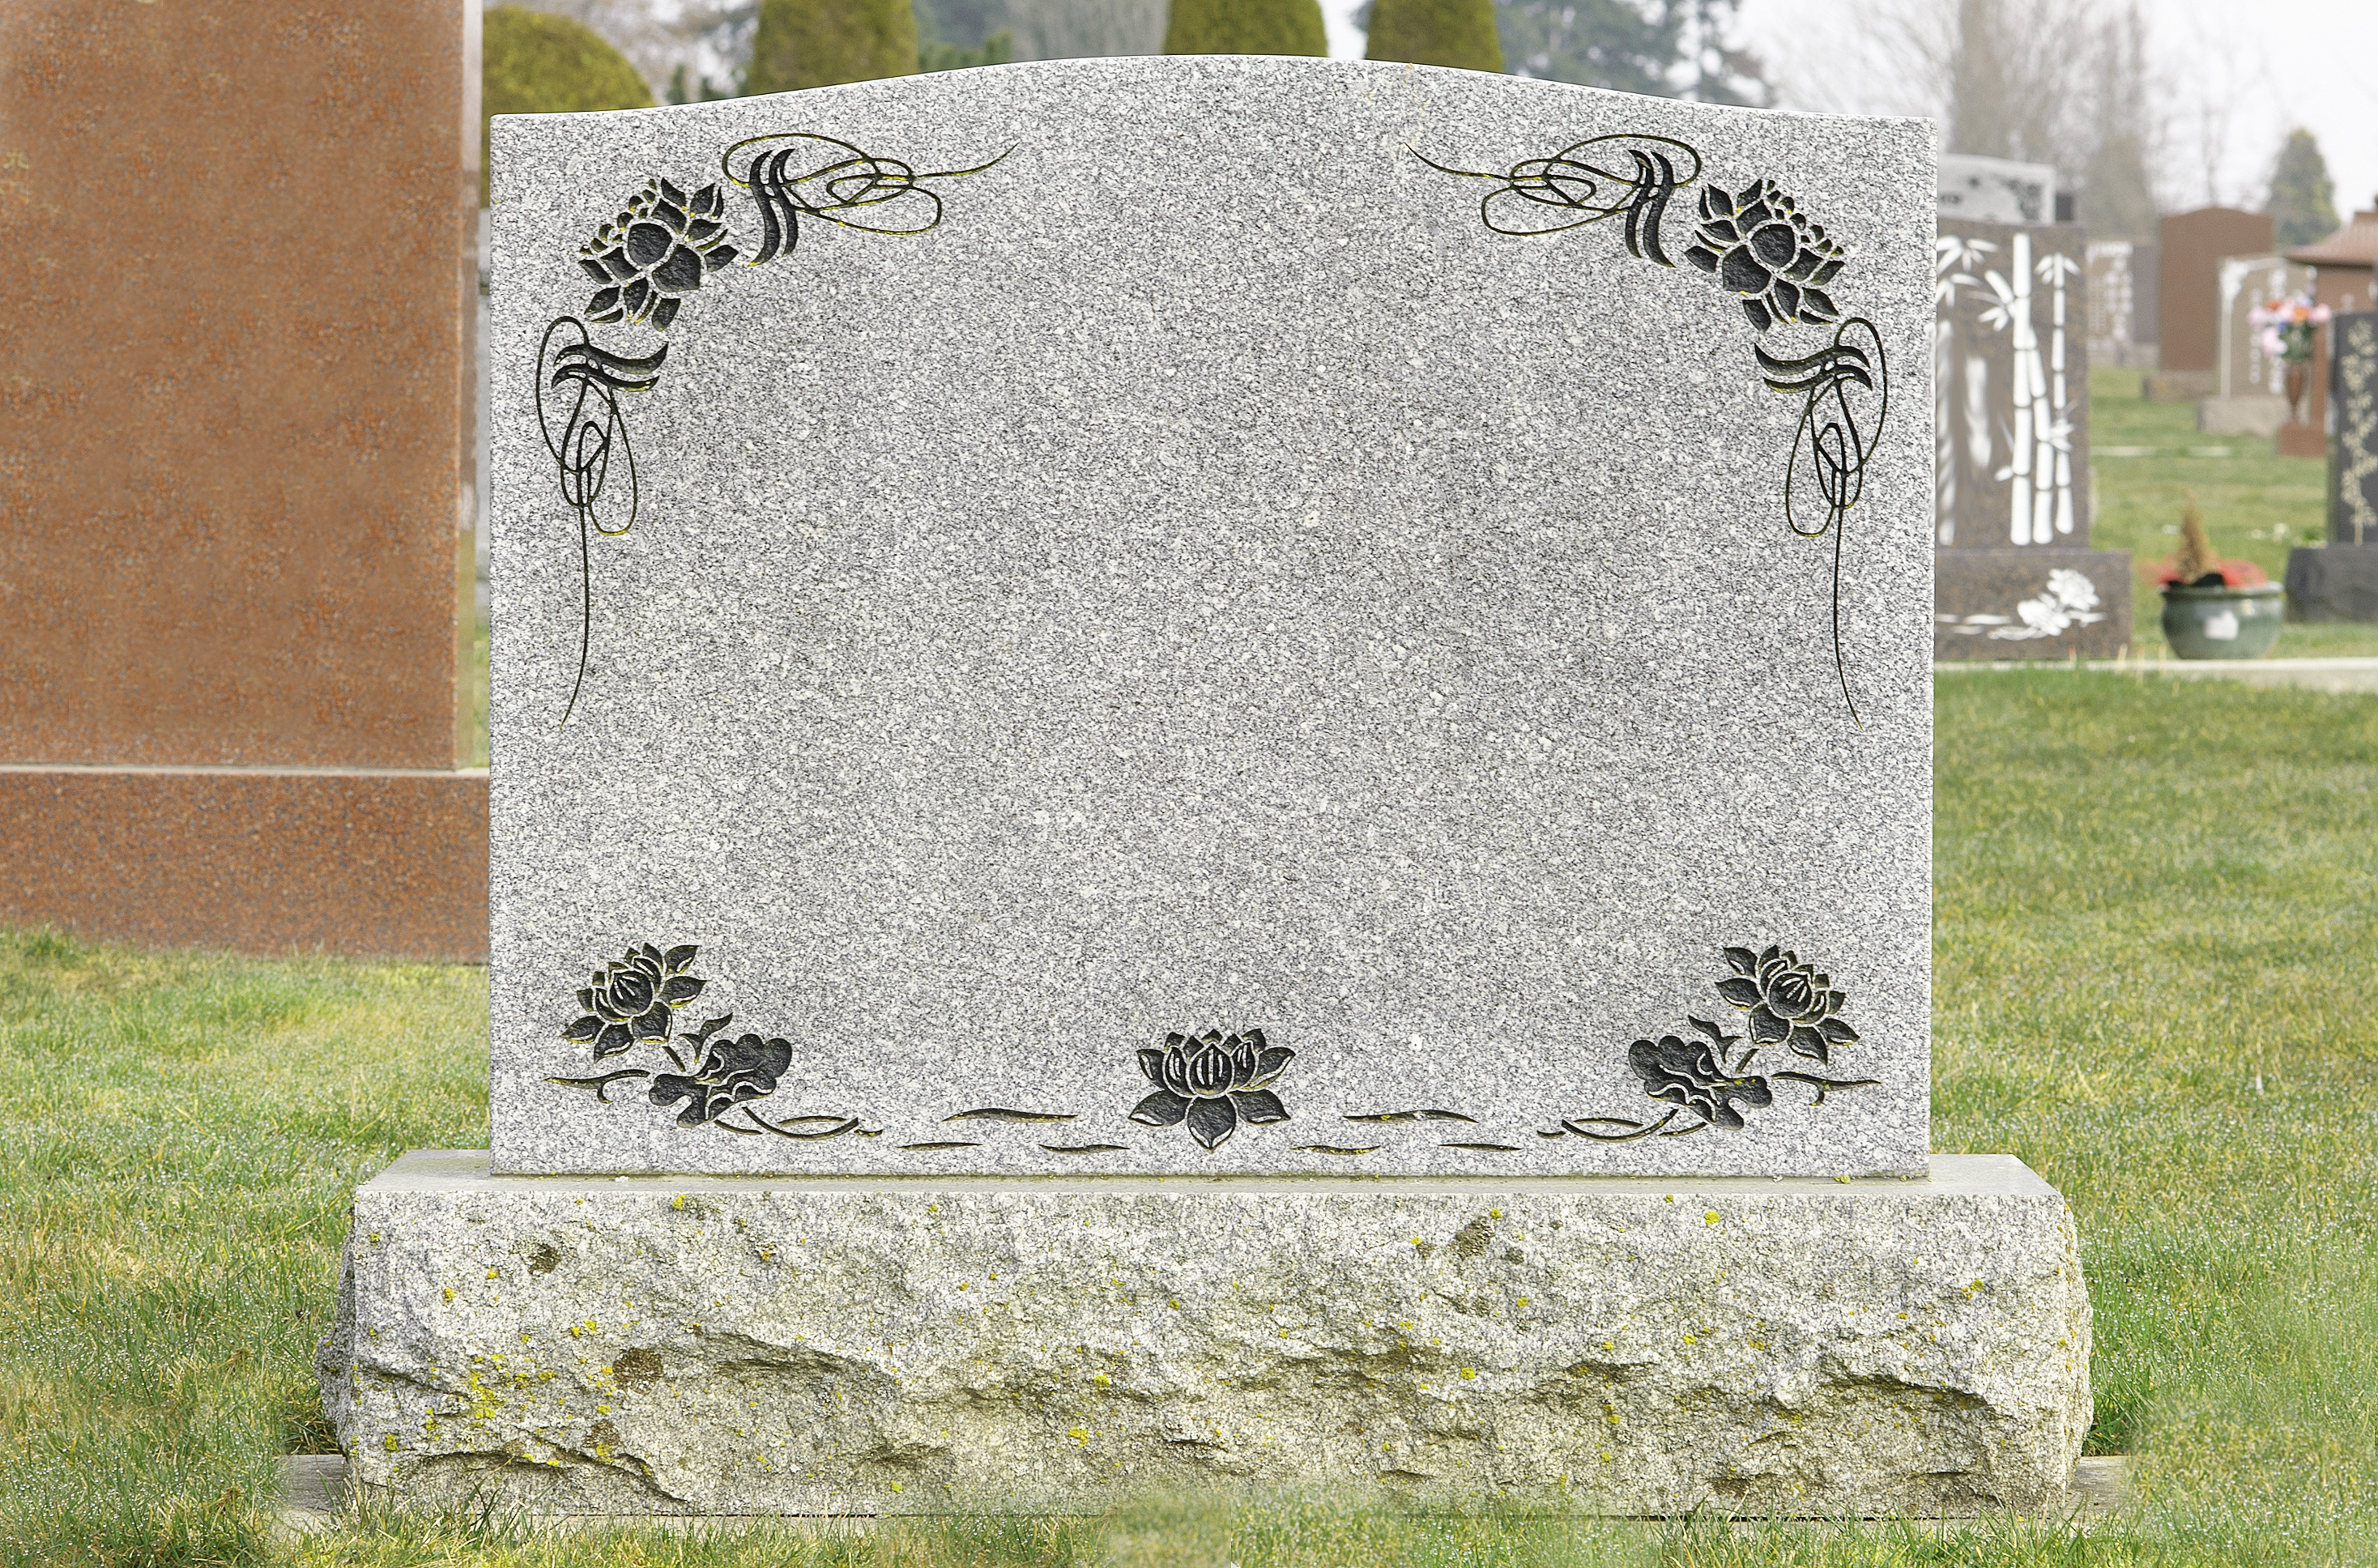 How to Start a Headstone Engraving Business | Bizfluent